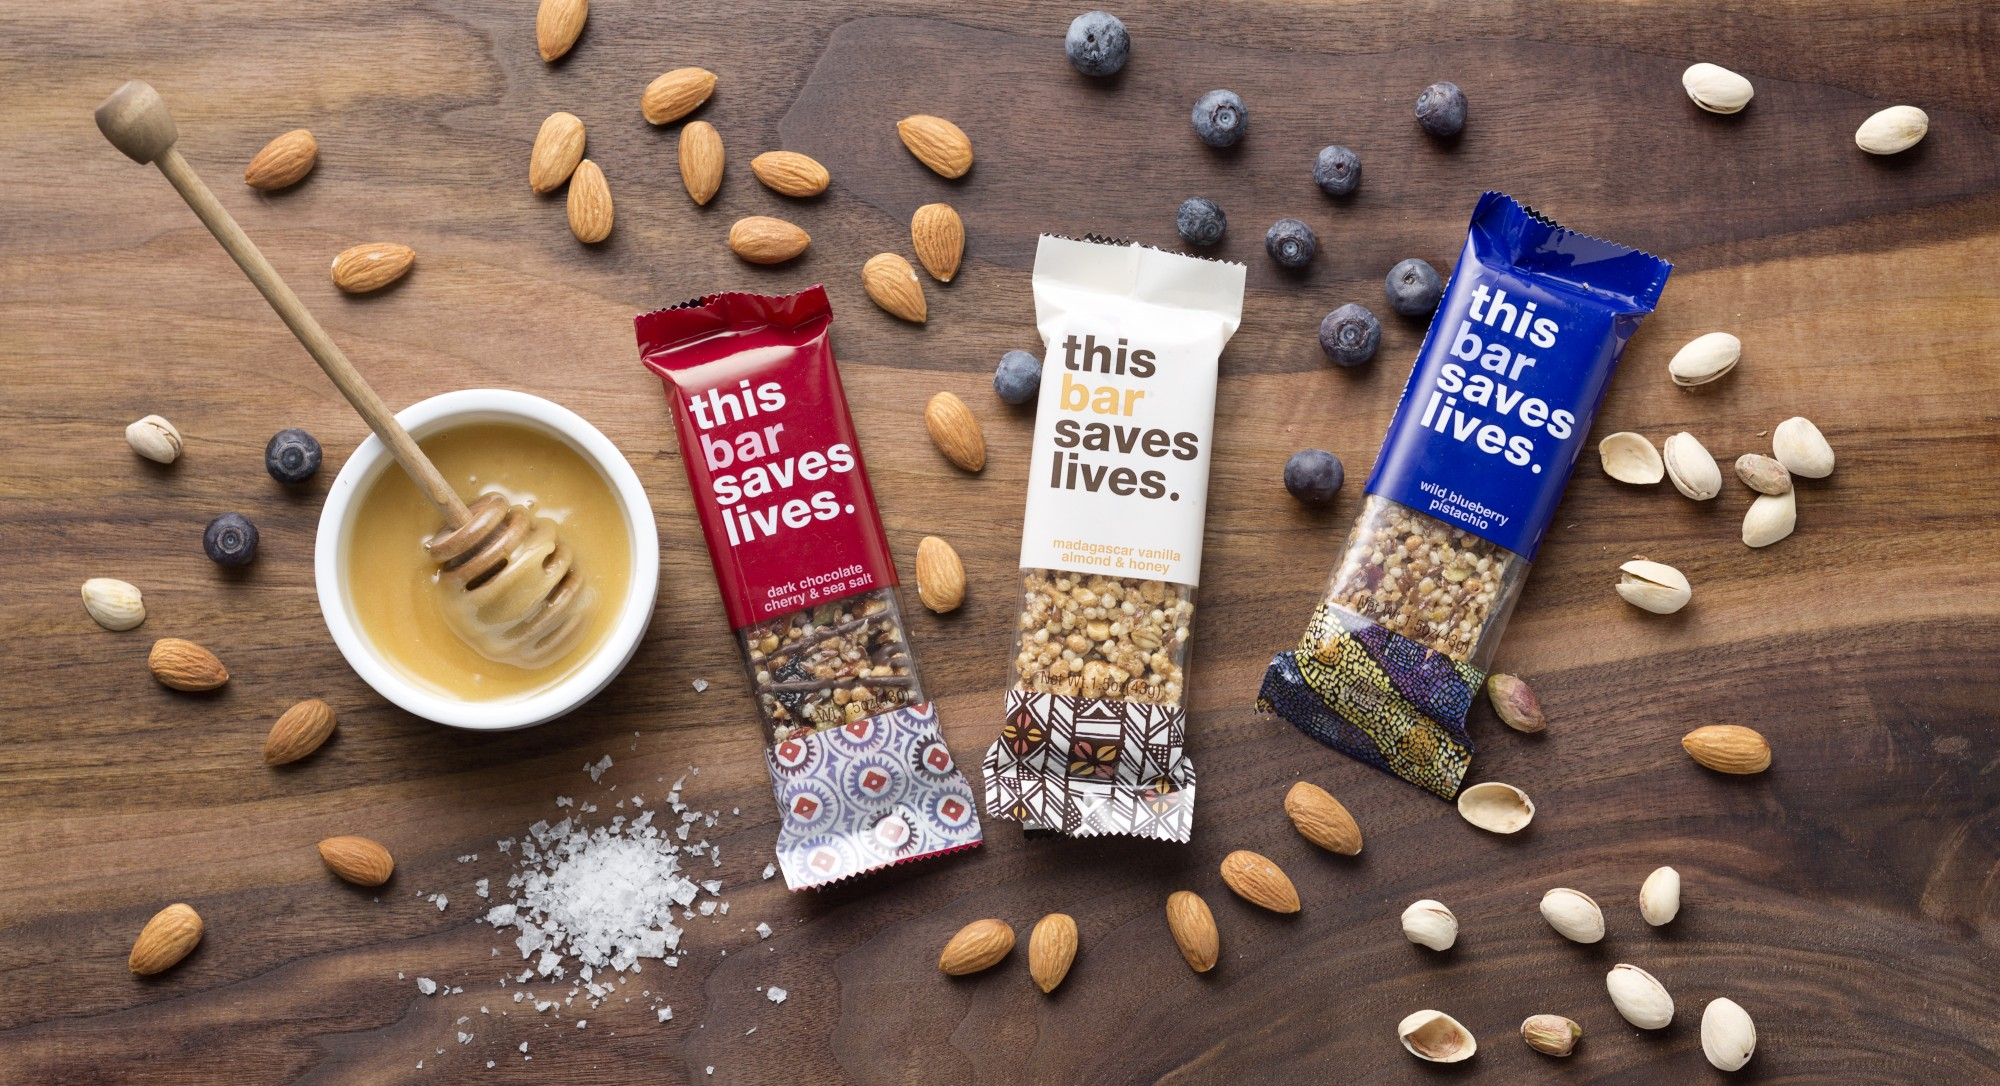 This Bar Saves Lives: A Snack With A Mission